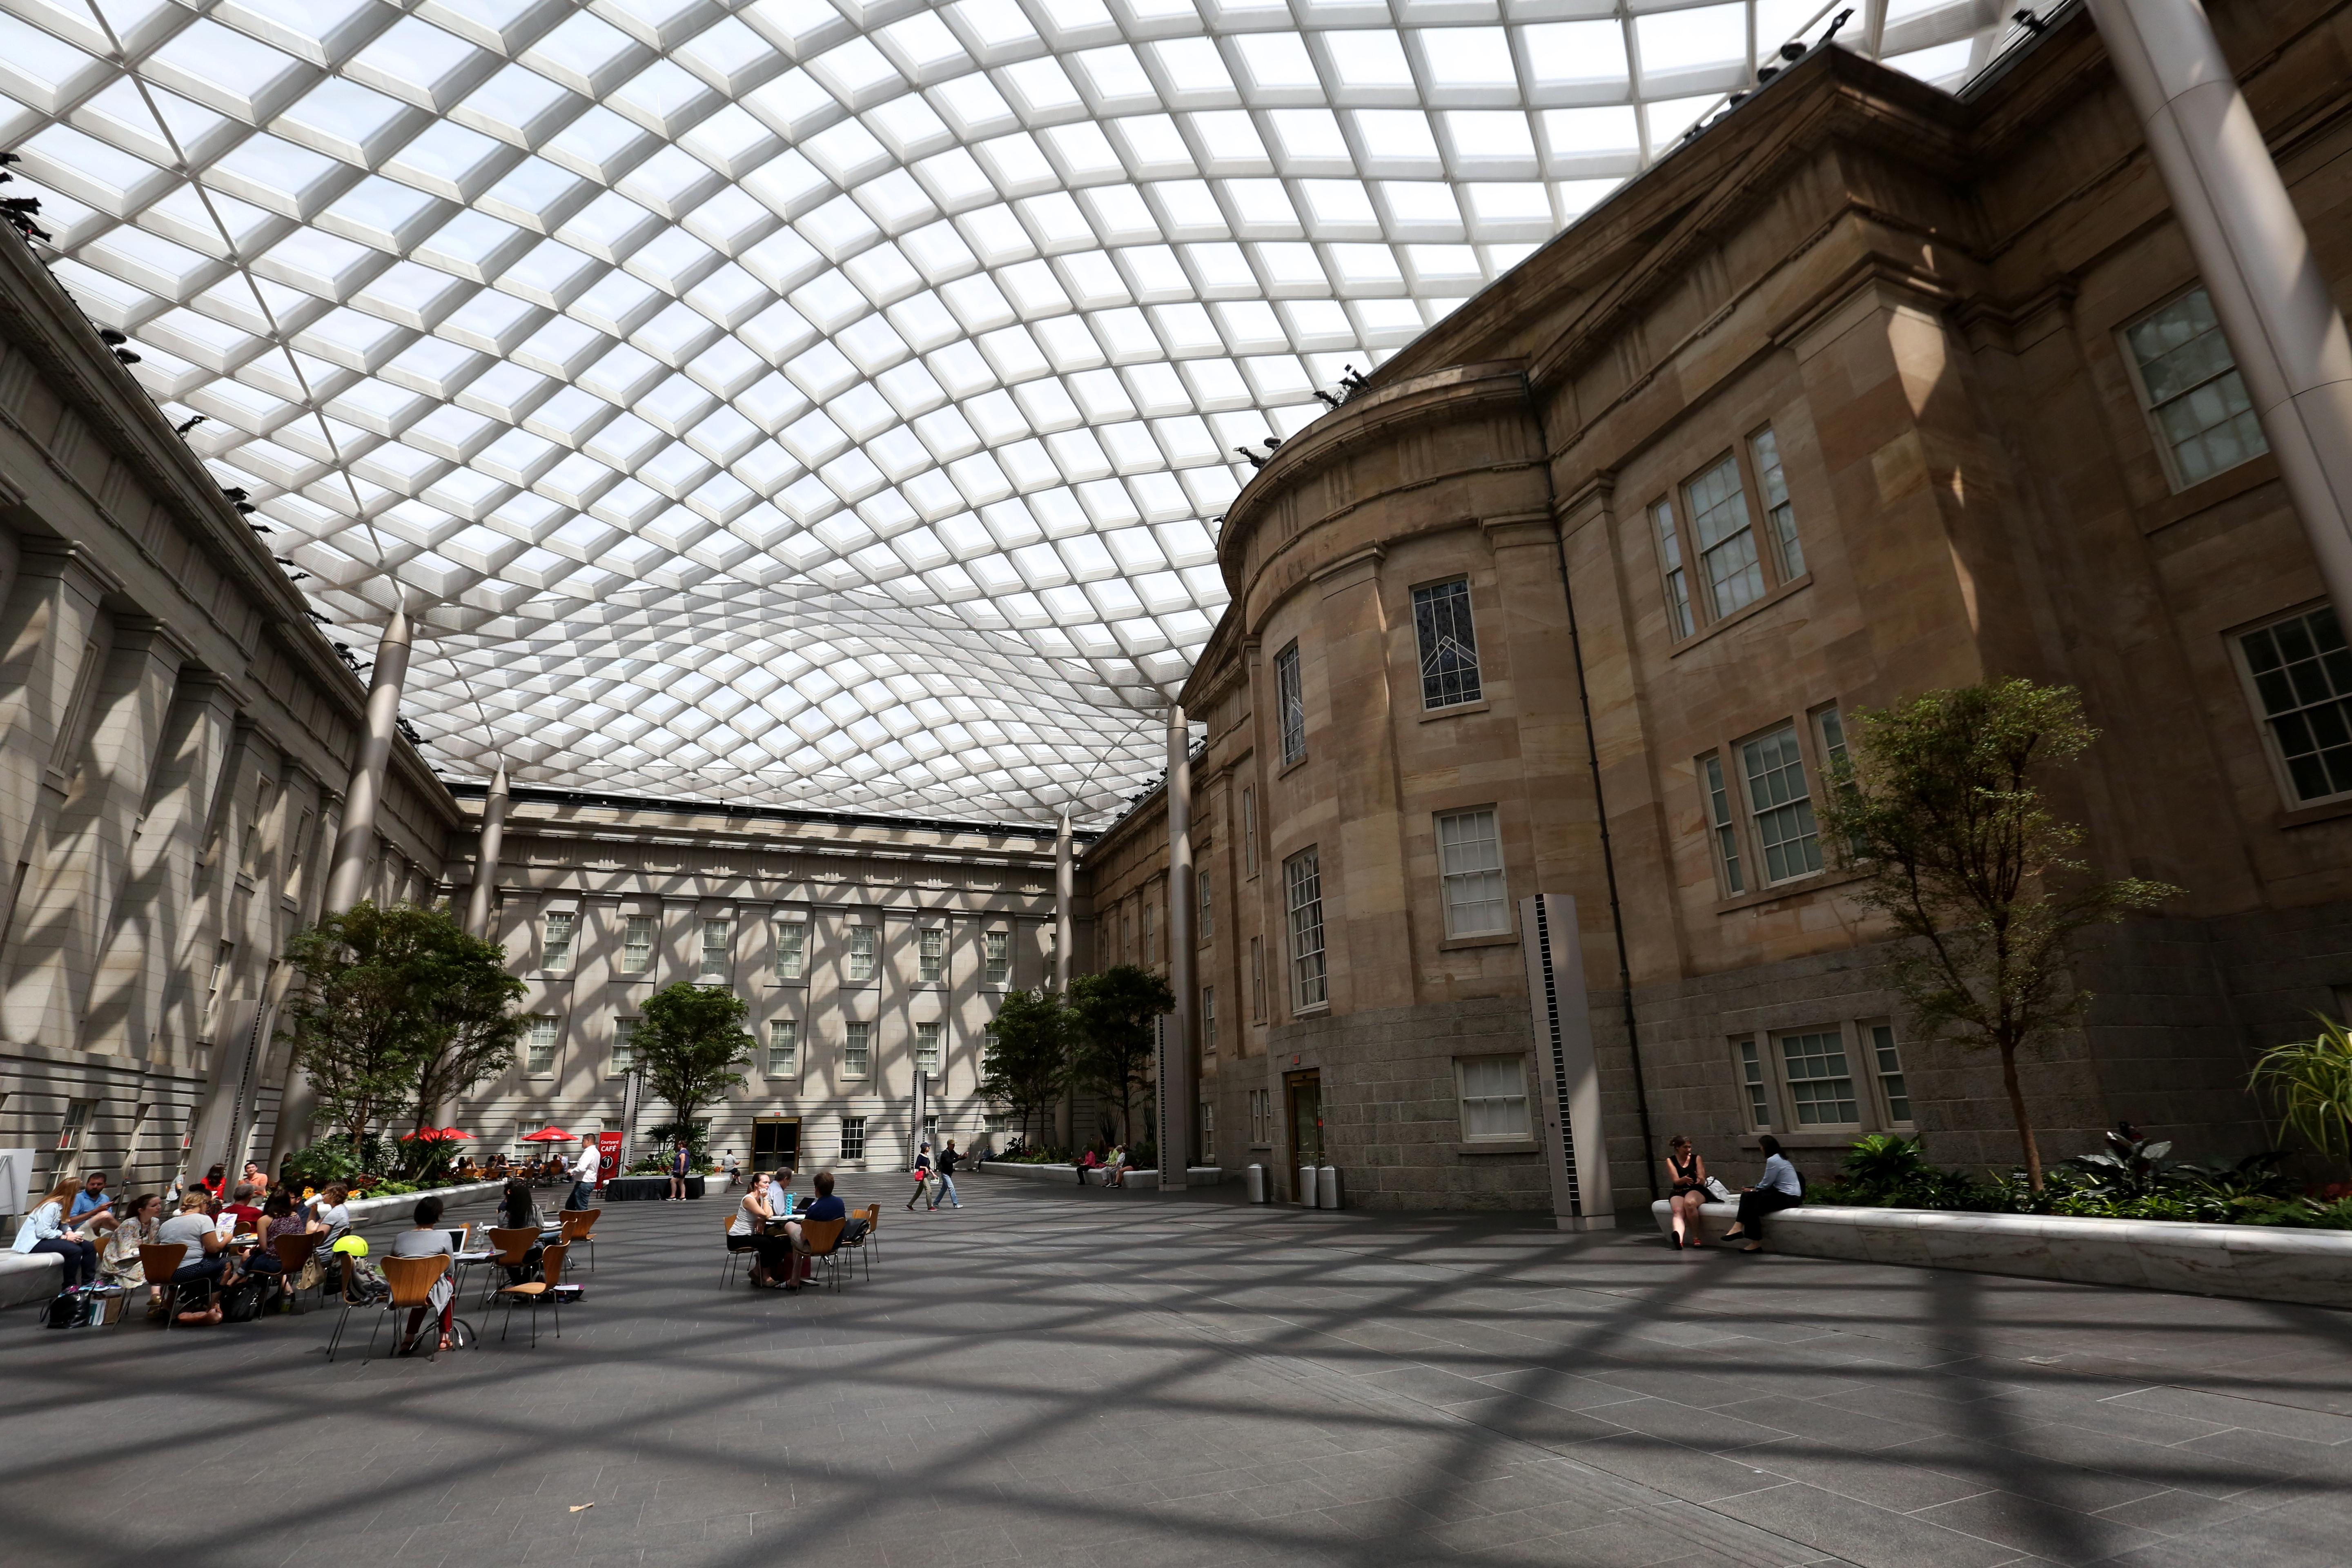 The Robert and Arlene Kogod Courtyard at the National Portrait Gallery is something of an open secret when it comes to perfect reading spots. The covered courtyard lets in a lot of light and there's plenty of space to spread out and read a book.,  especially if you're just trying to sneak away on your lunch break. (Amanda Andrade-Rhoades/DC Refined)